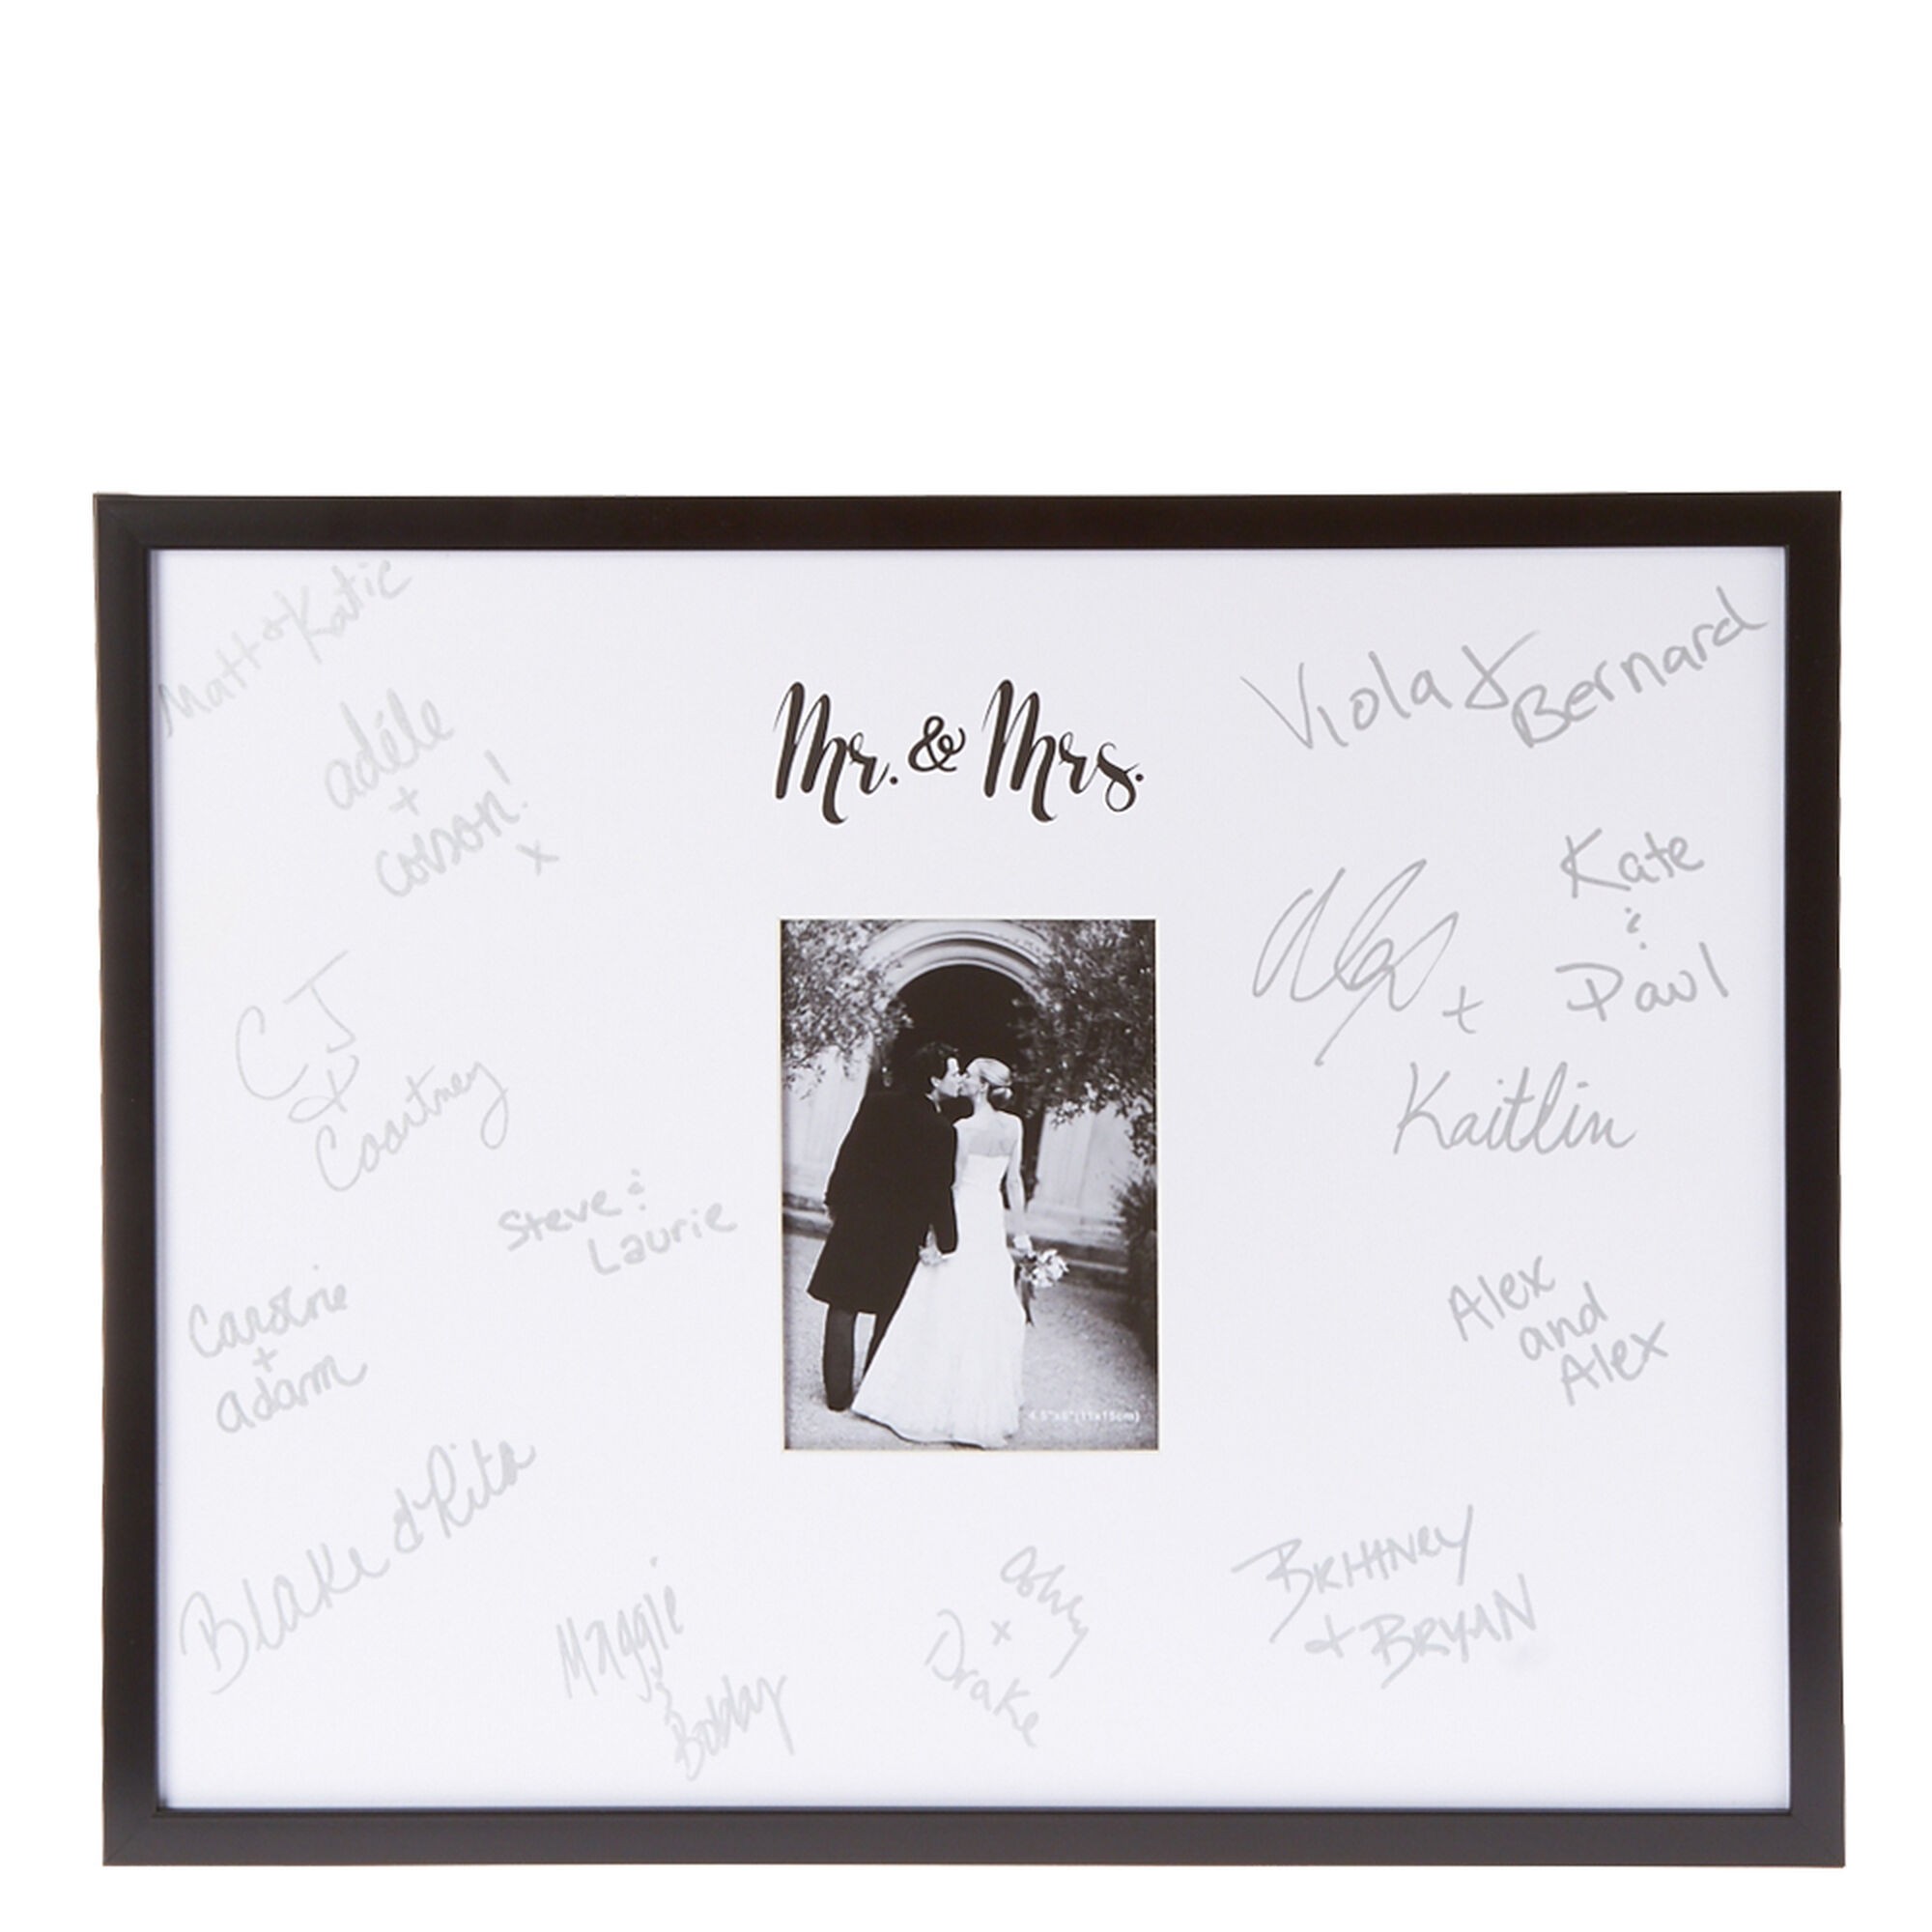 Mr. & Mrs. Autograph Photo Frame | Icing US